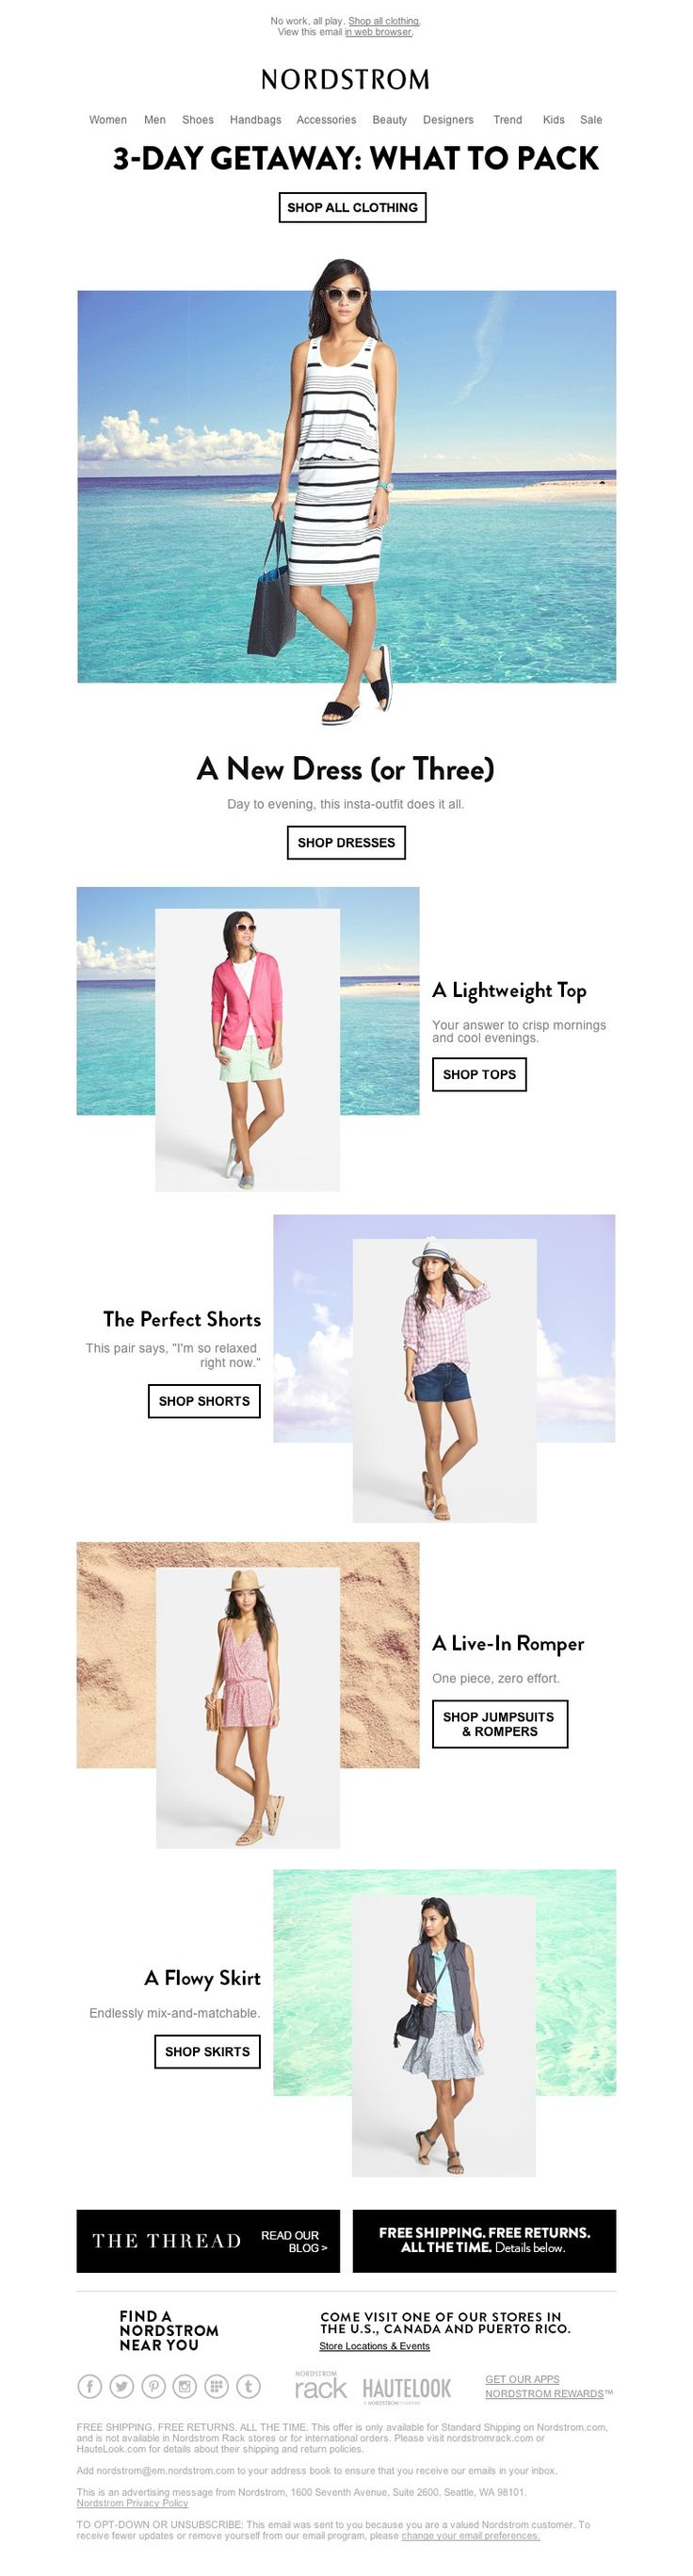 Nordstrom - What to Pack for Your 3-Day Weekend - Good solution for showing location without traveling